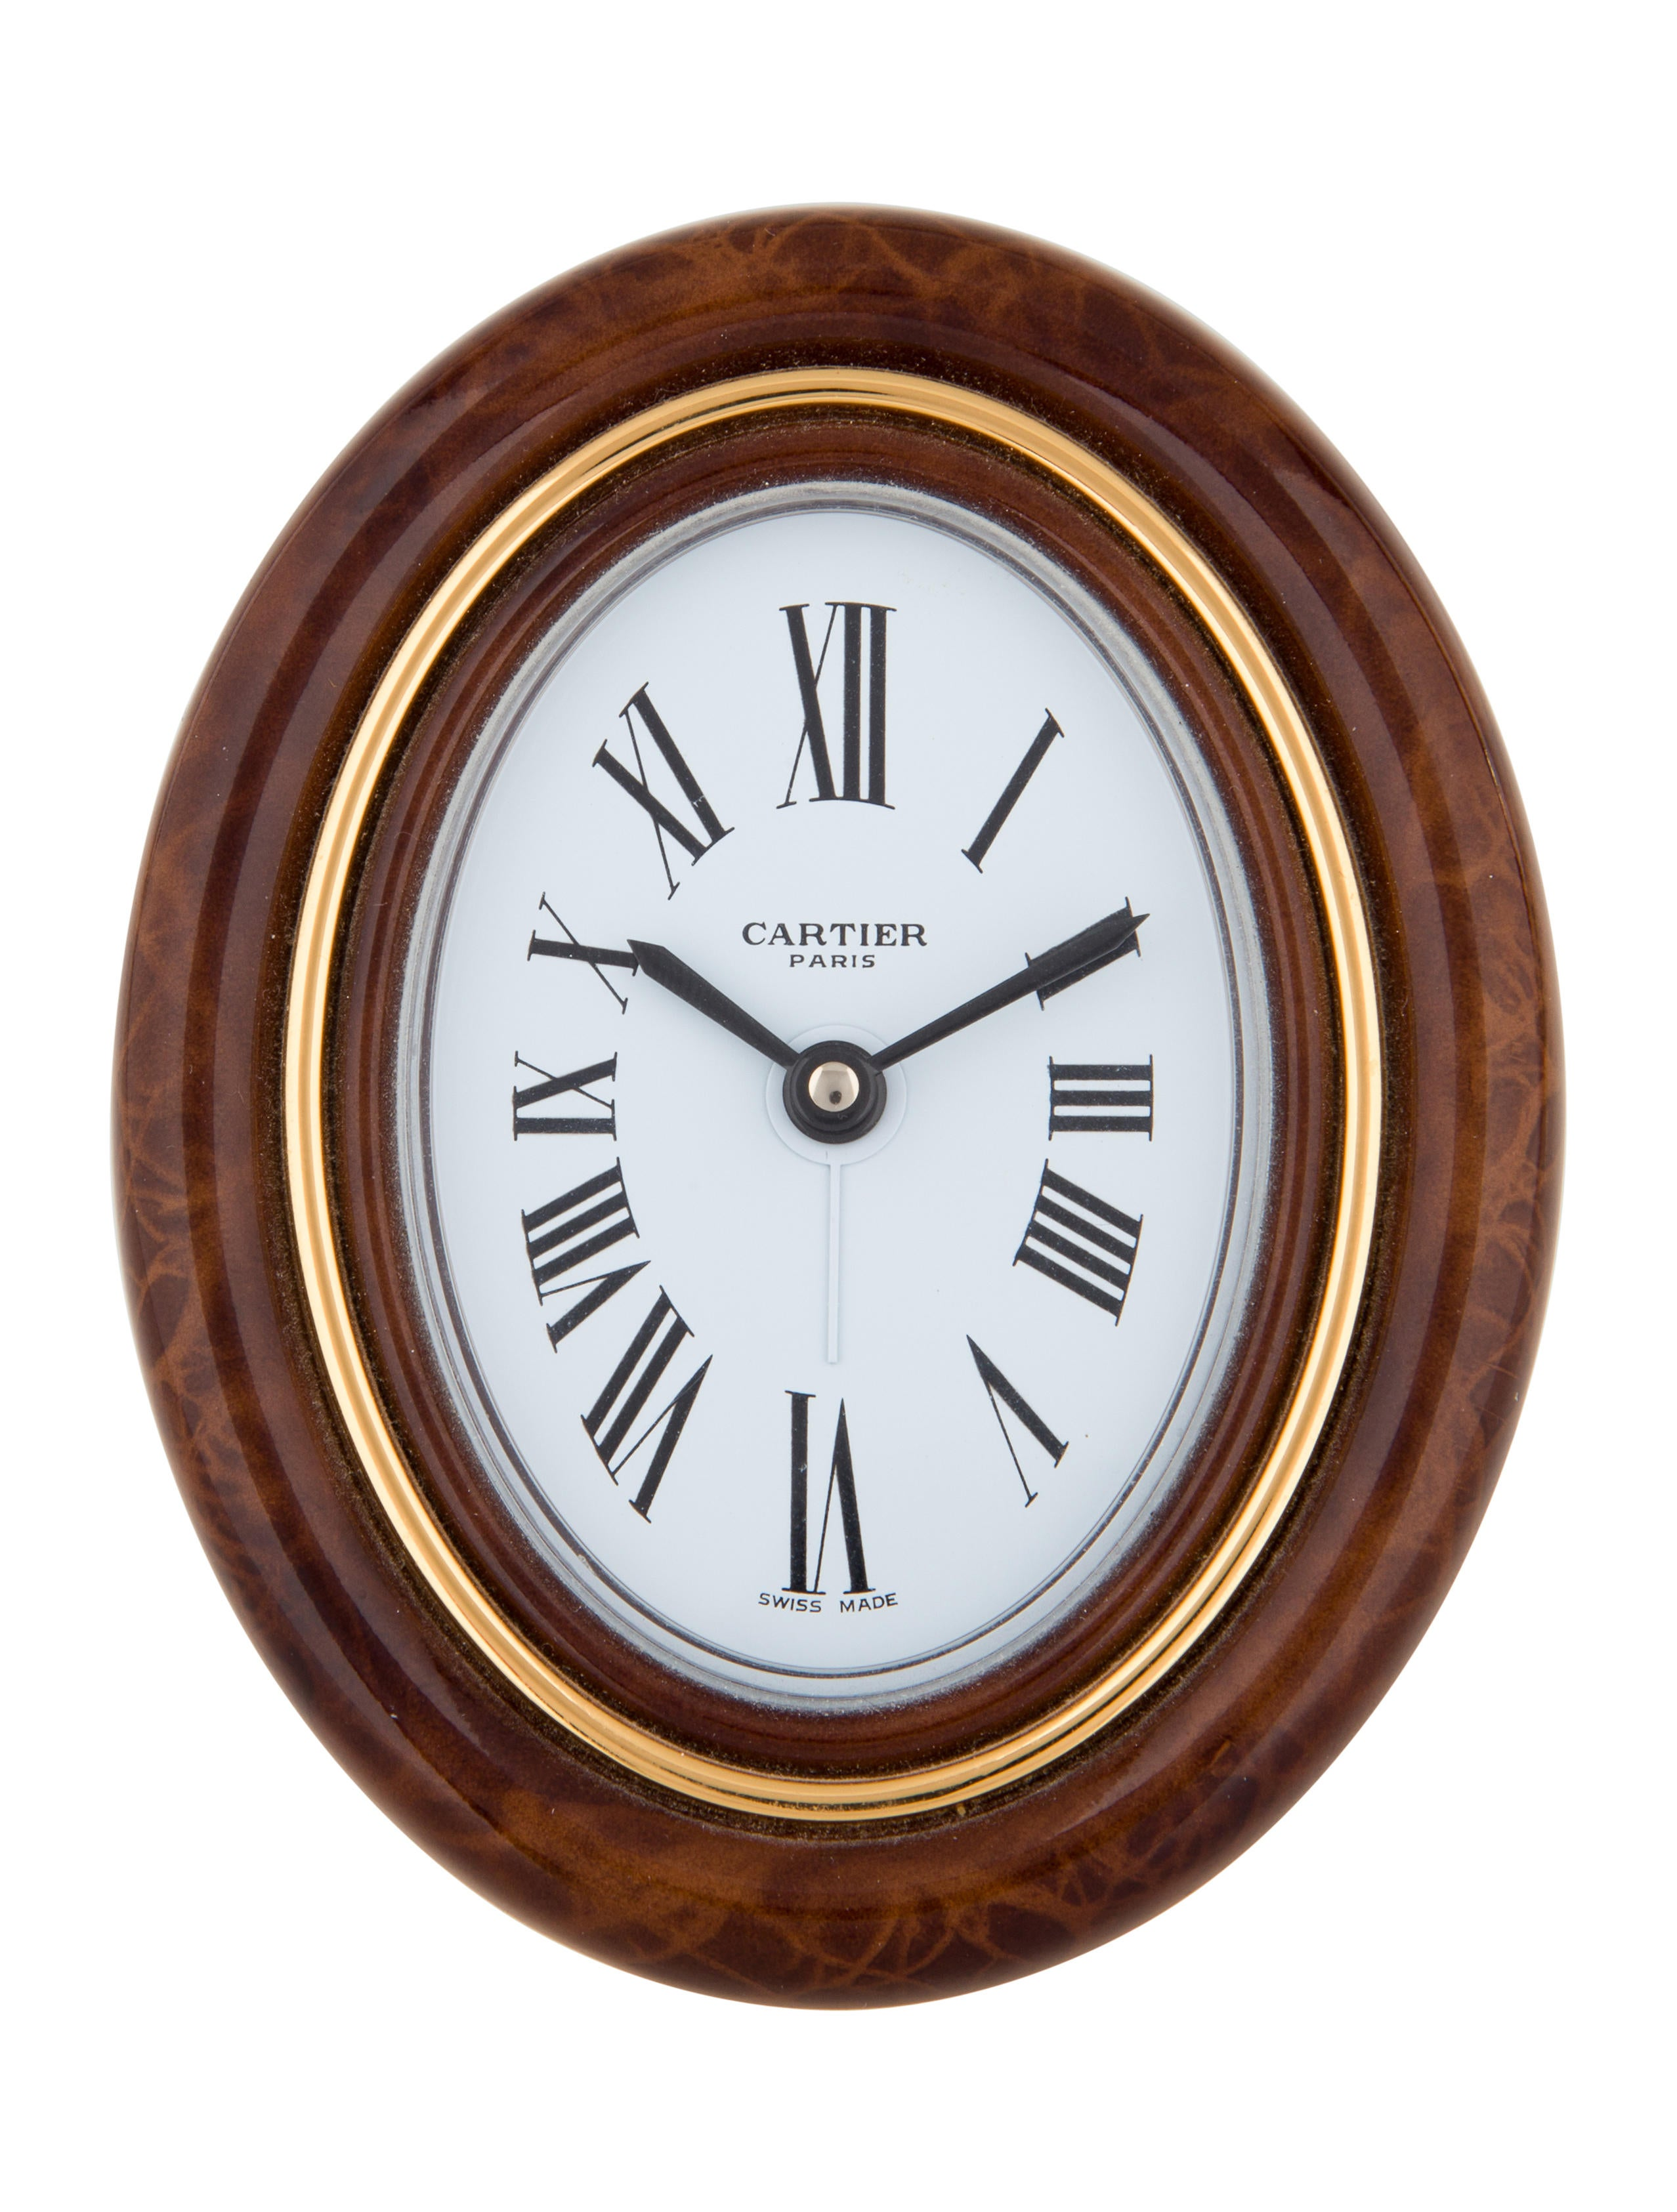 Cartier oval desk clock decor and accessories crt33940 the oval desk clock amipublicfo Images